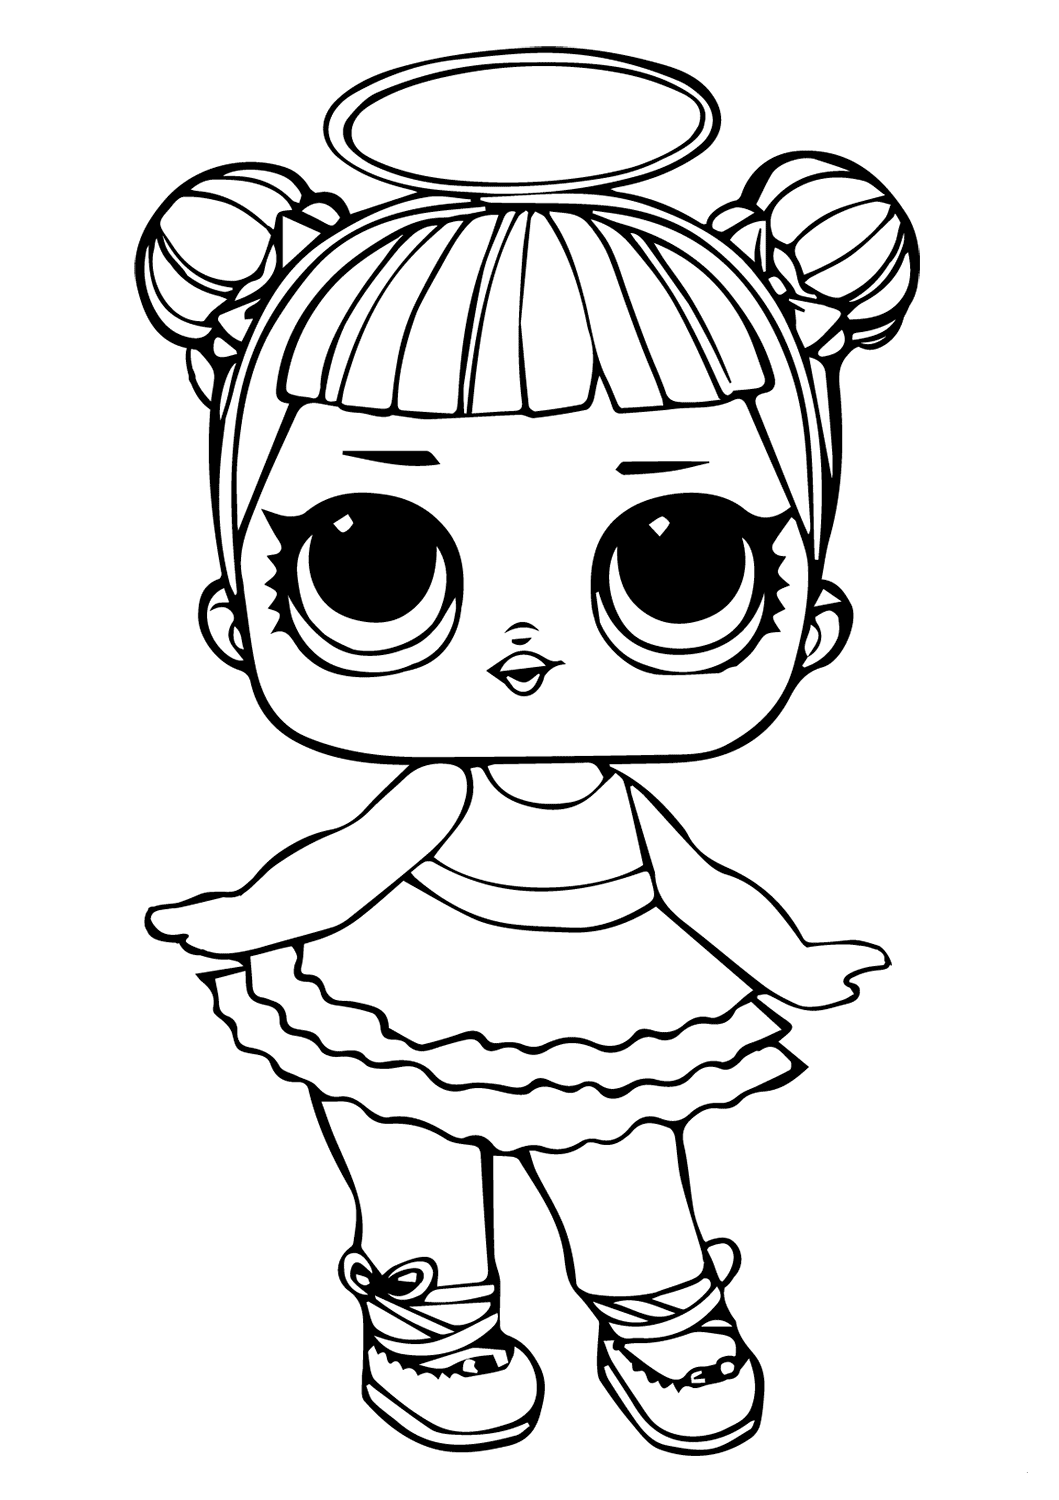 free printable lol coloring pages free printable lol surprise hairgoals coloring pages pages lol free printable coloring